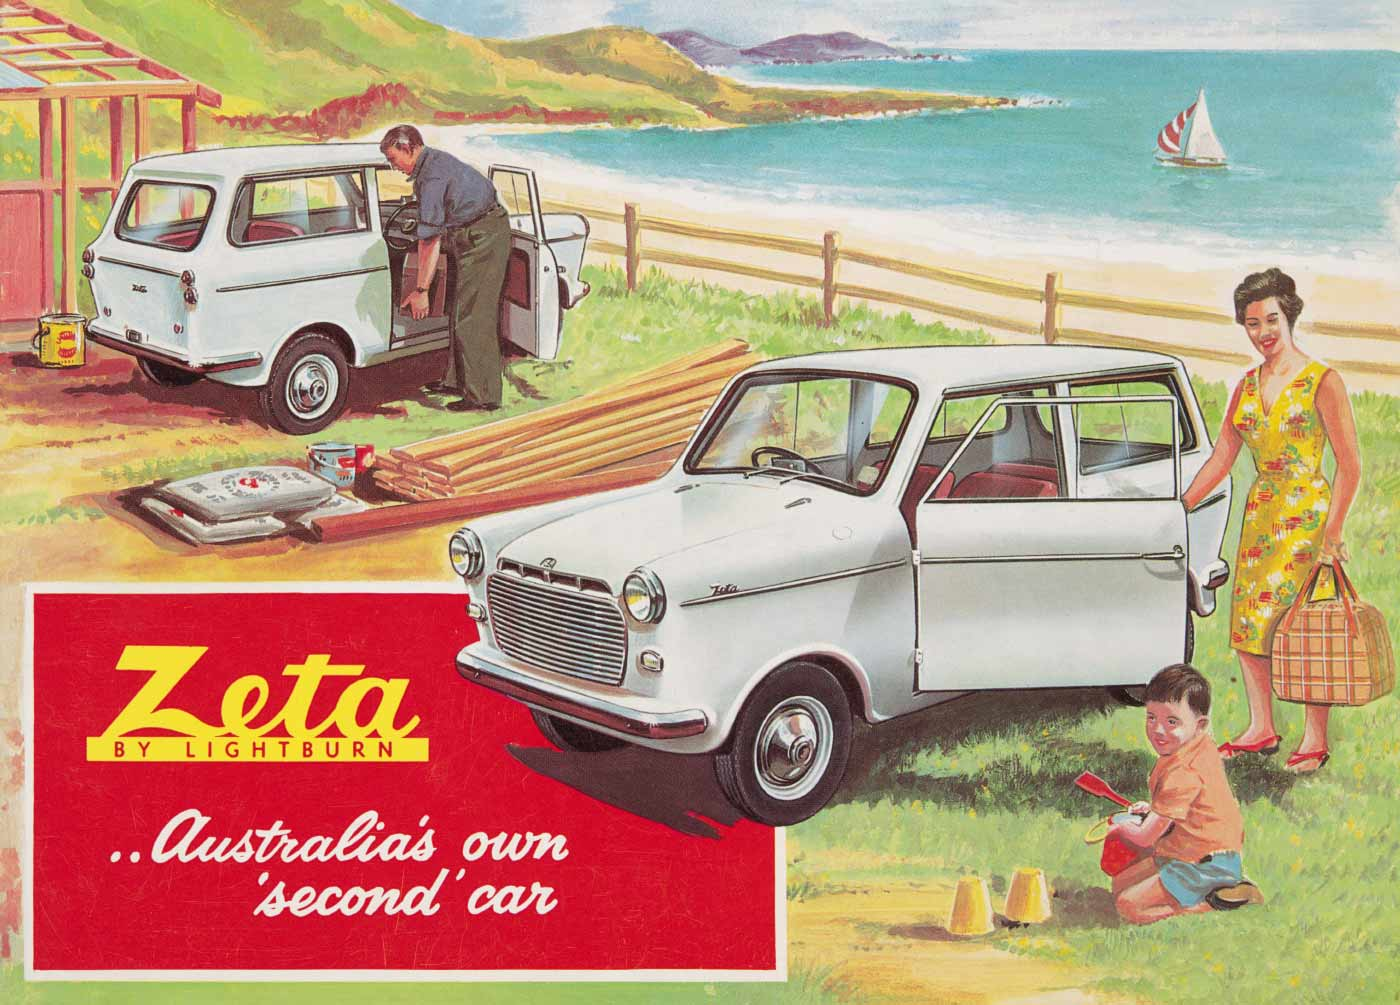 A coloured advertising brochure cover featuring two small grey motor cars, a man, a woman, and a child in a beach setting.